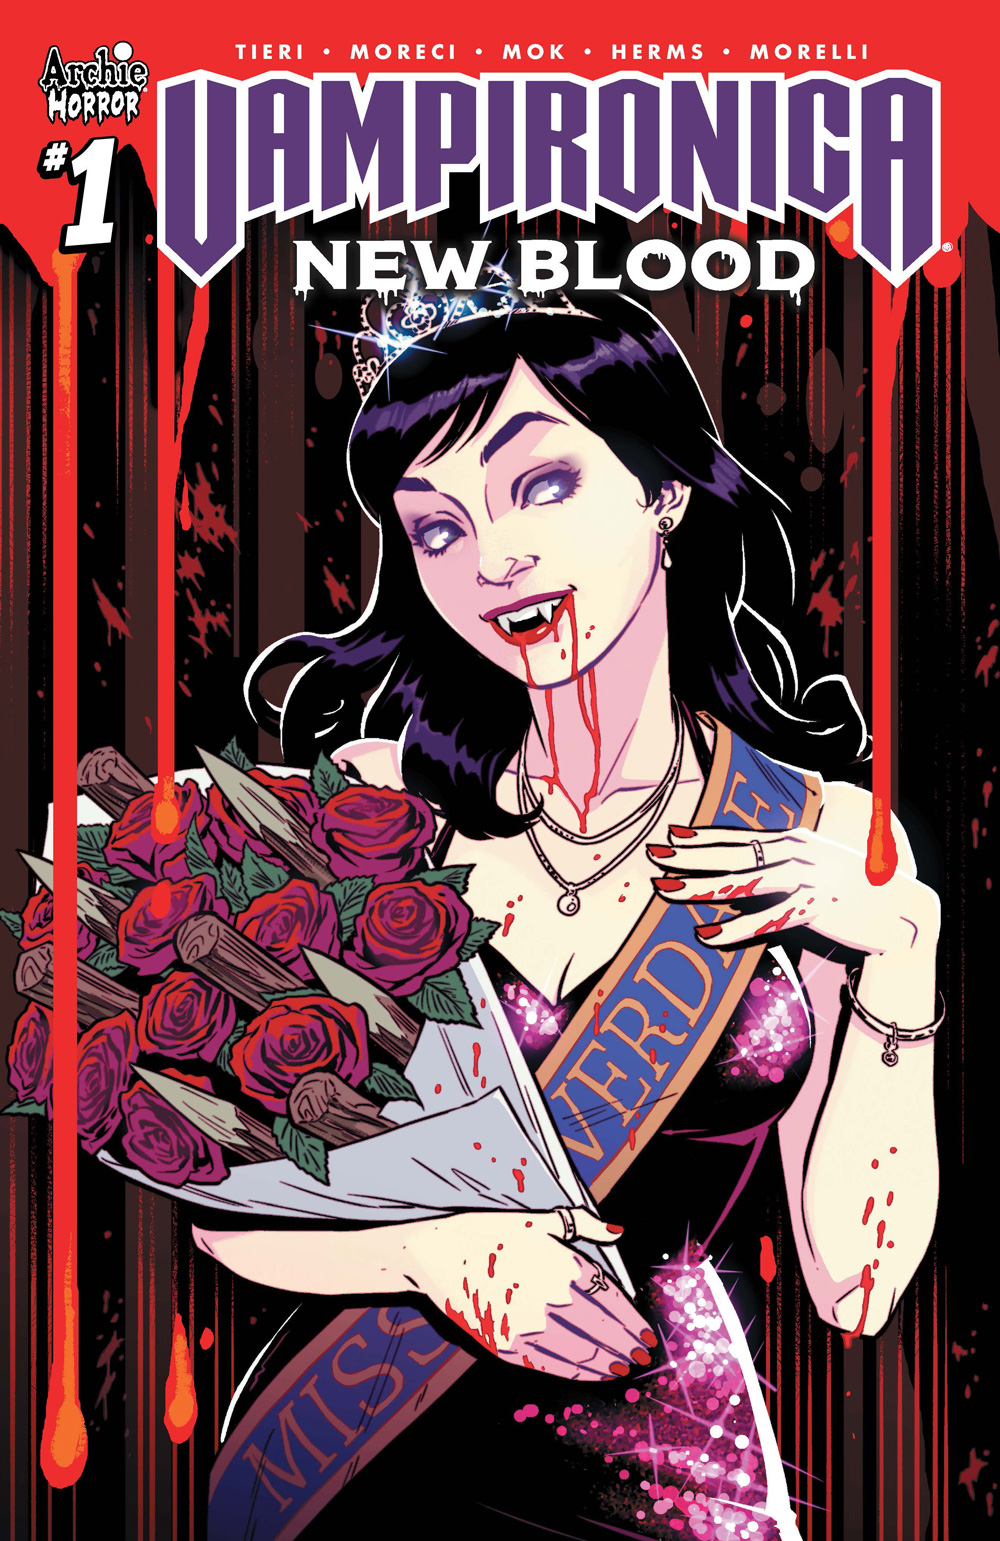 Variant Cover for New Blood #1 under Archie Comics 2019.